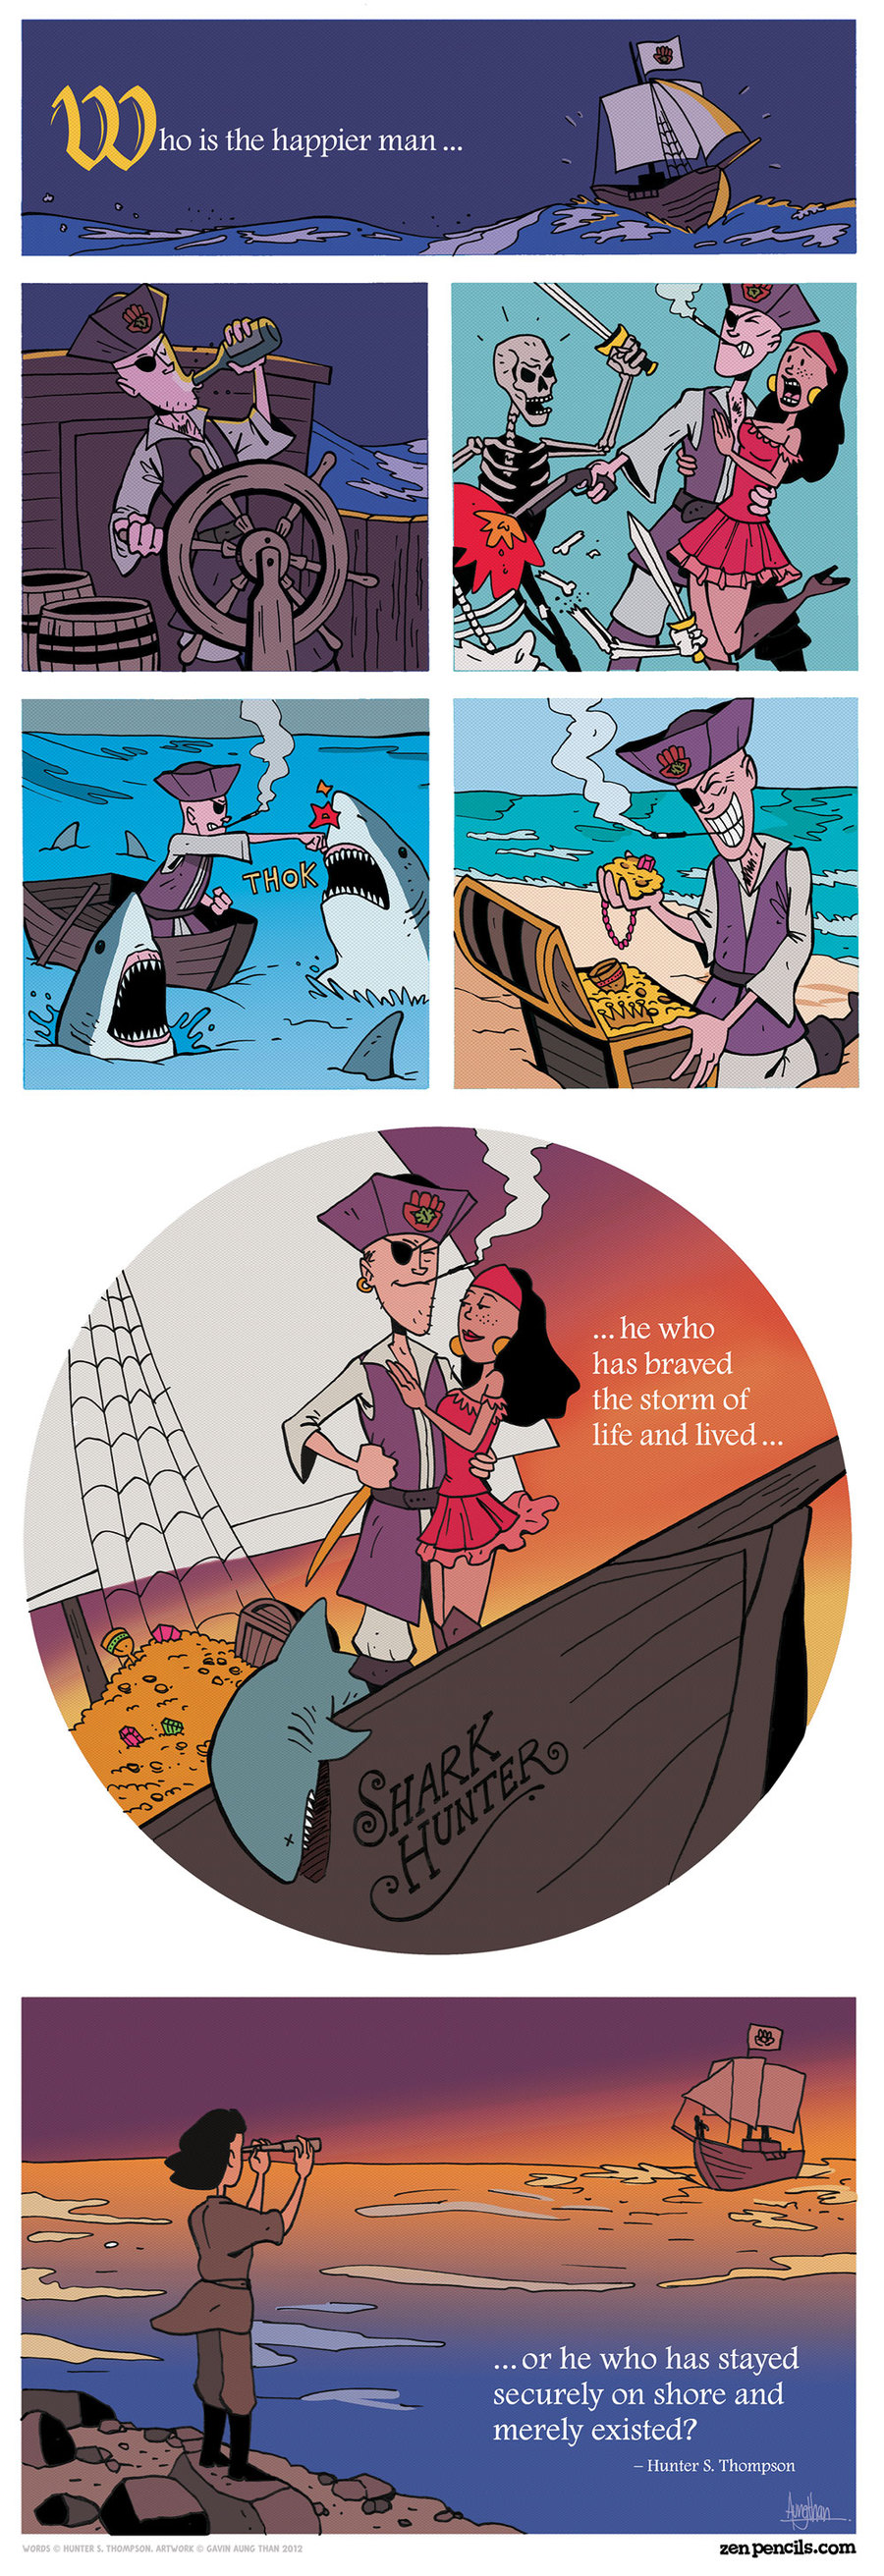 Zen Pencils for Sep 20, 2013 Comic Strip